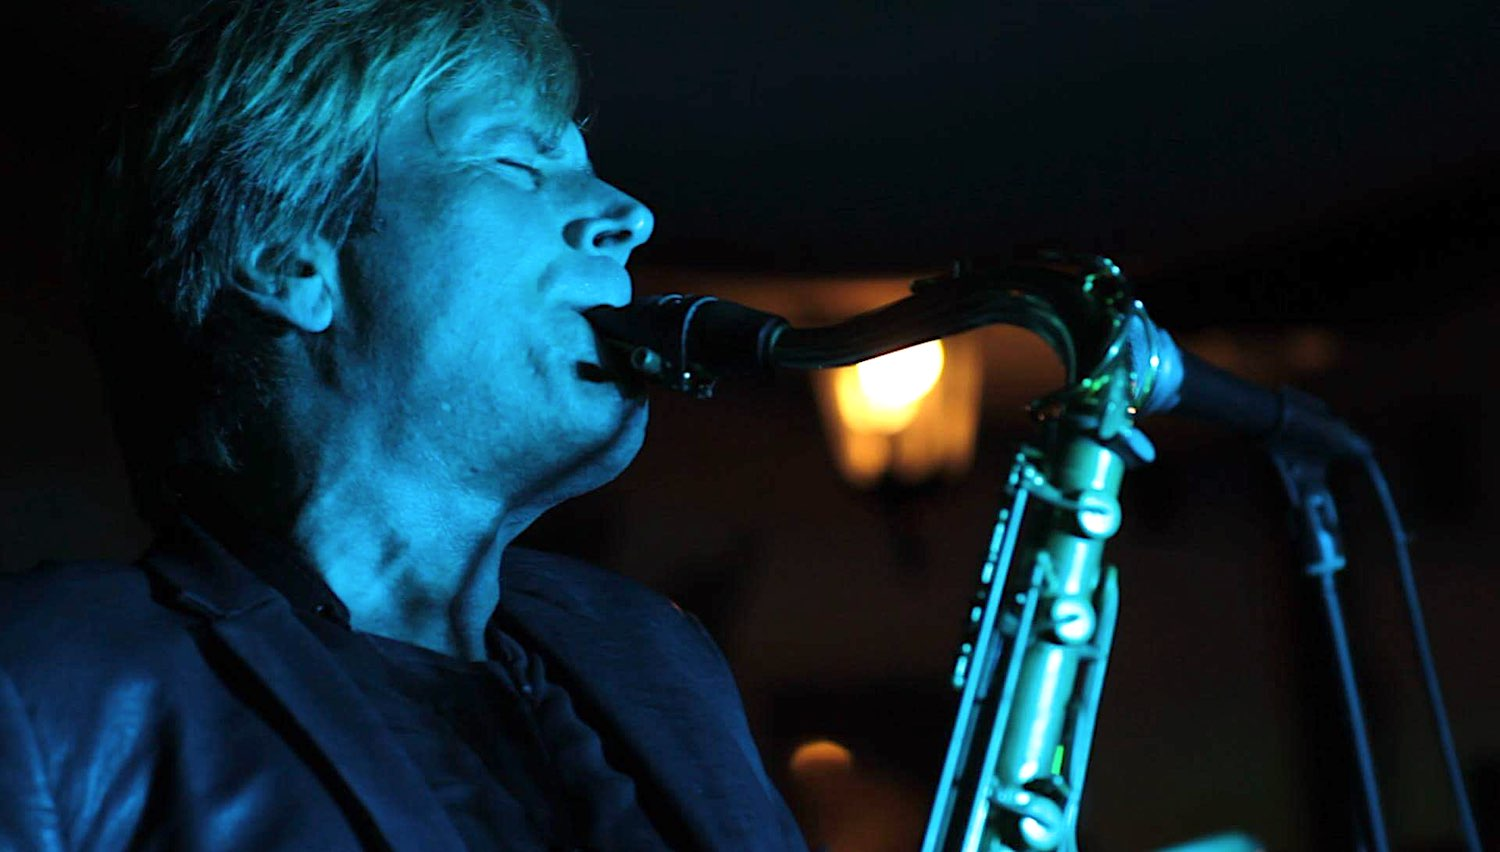 Pop Up Tour of Italy: Steve Norman torna in Italia - TuscanyPeople